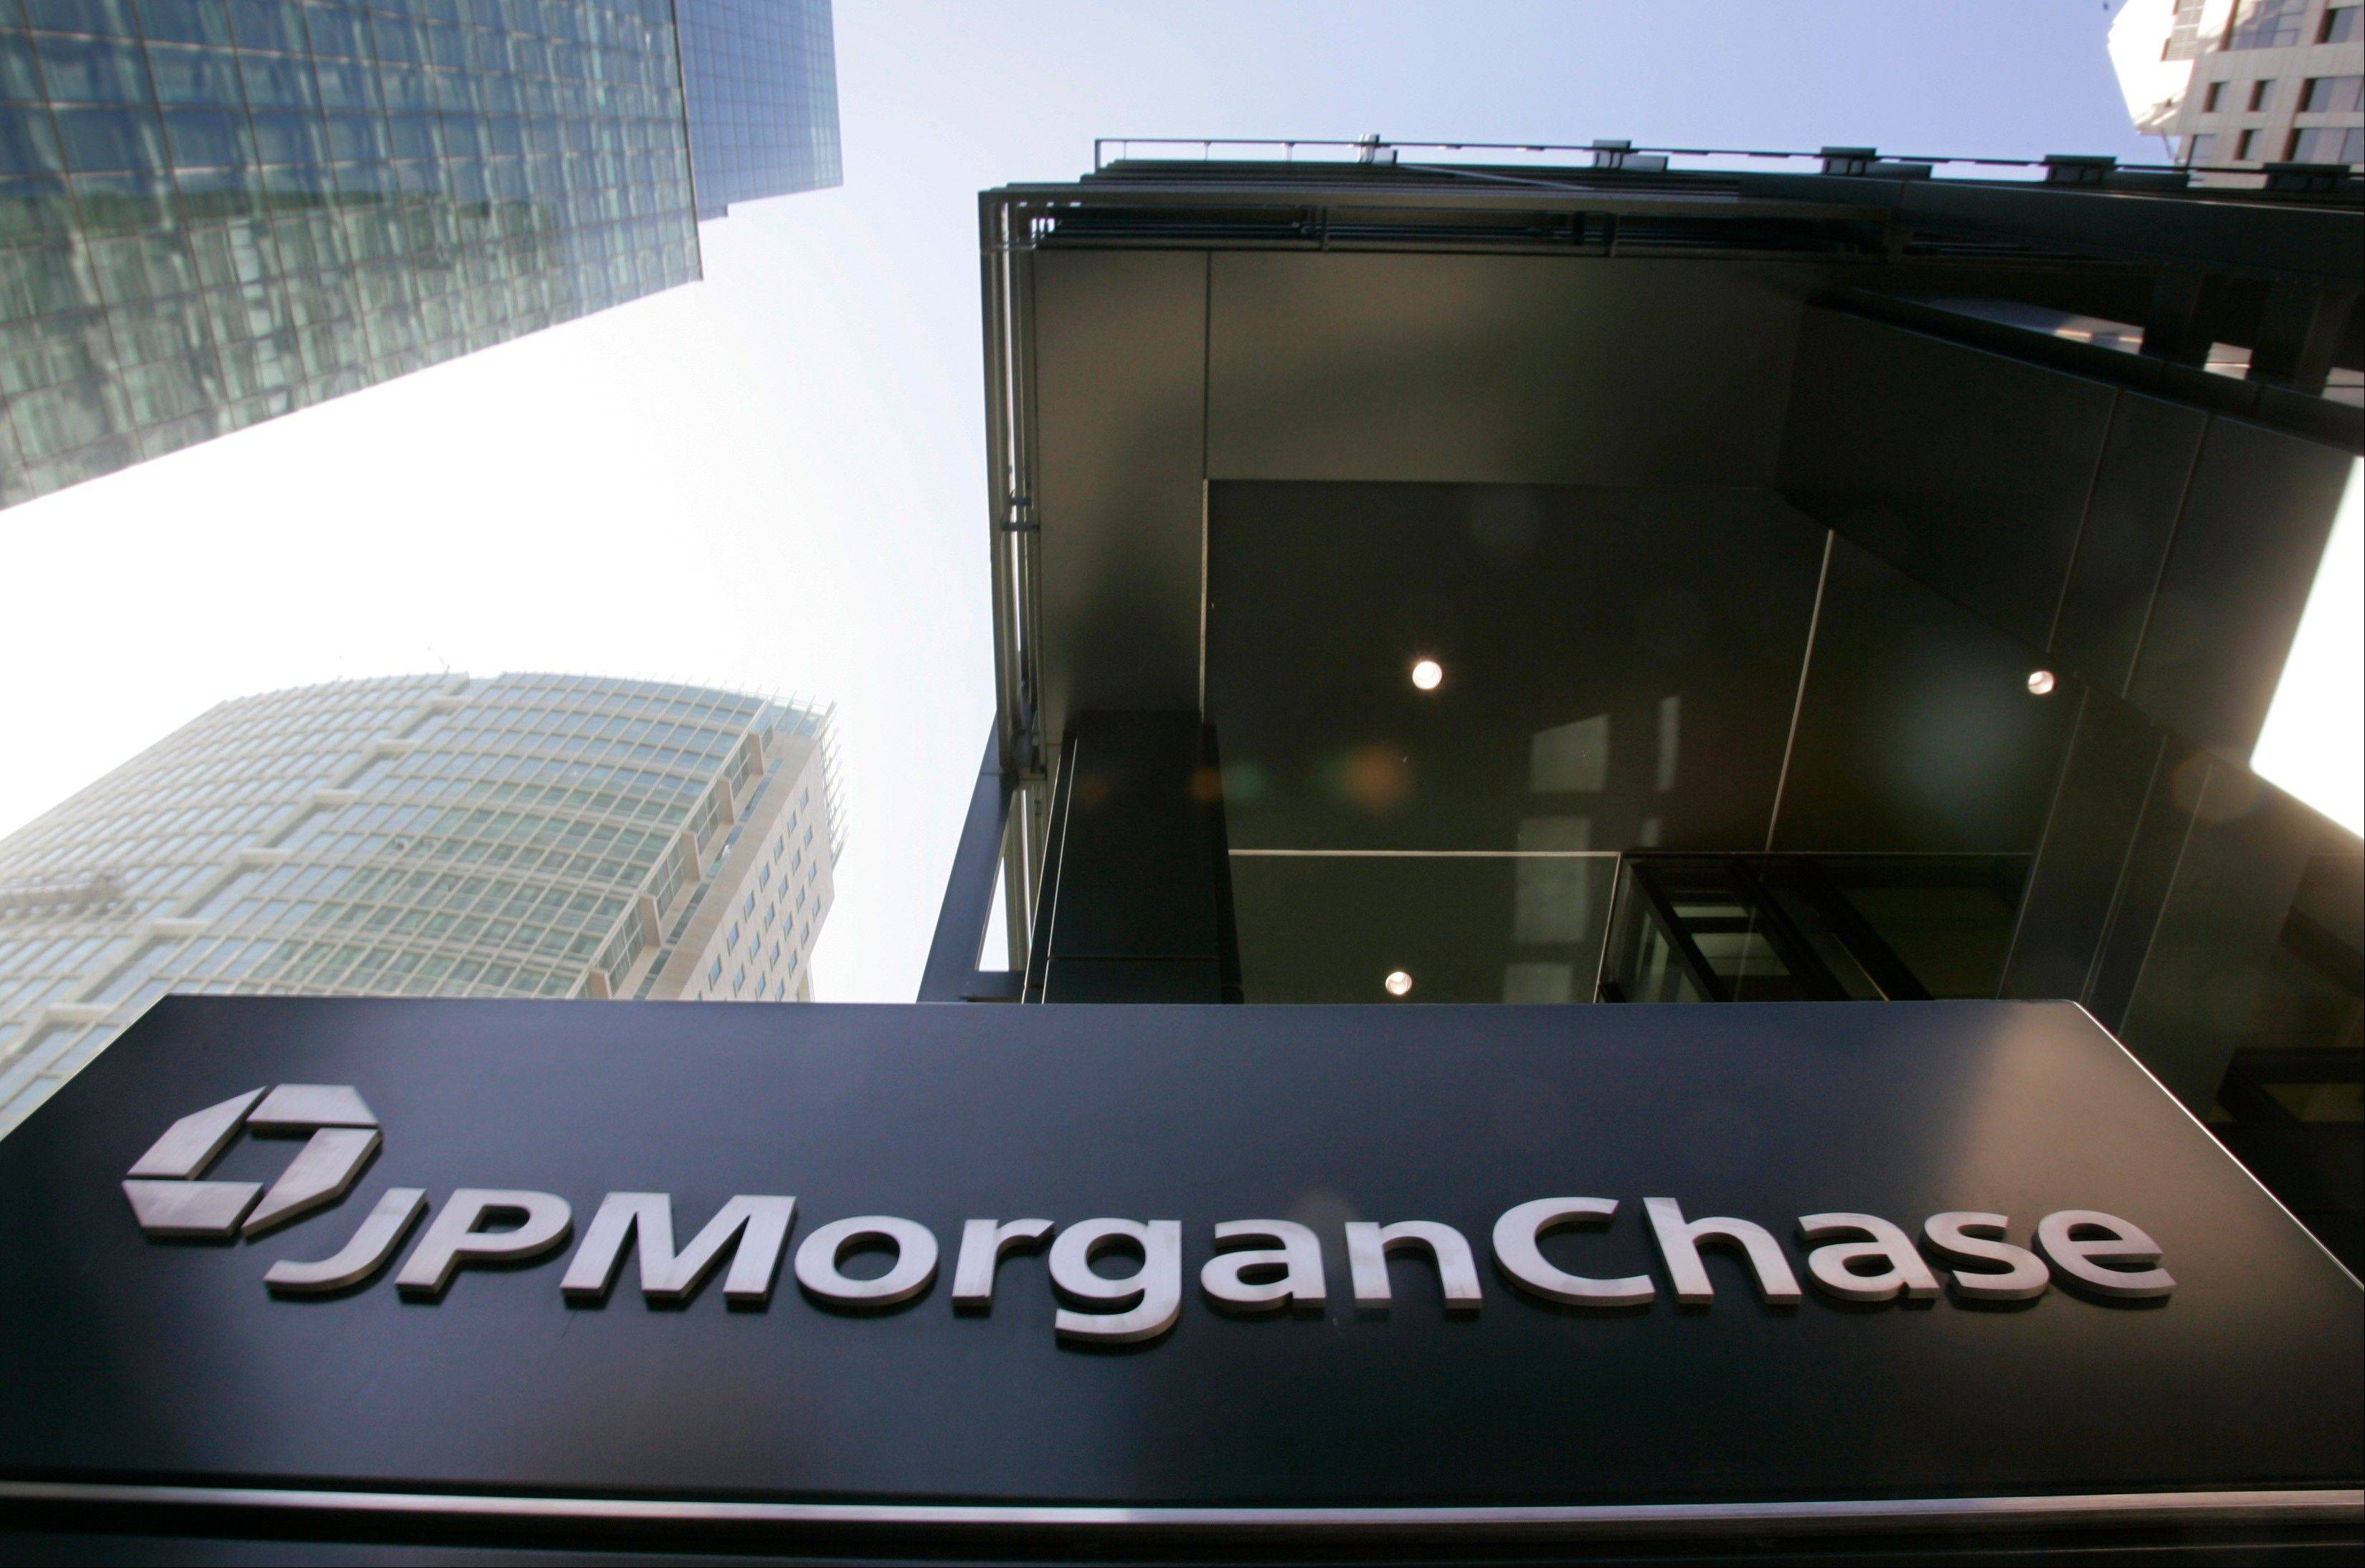 The New York attorney general's office has hit JPMorgan Chase & Co. with a civil lawsuit, alleging that investment bank Bear Stearns ó prior to its collapse and subsequent sale to JPMorgan in 2008 ó perpetrated massive fraud in deals involving billions in residential mortgage-backed securities.